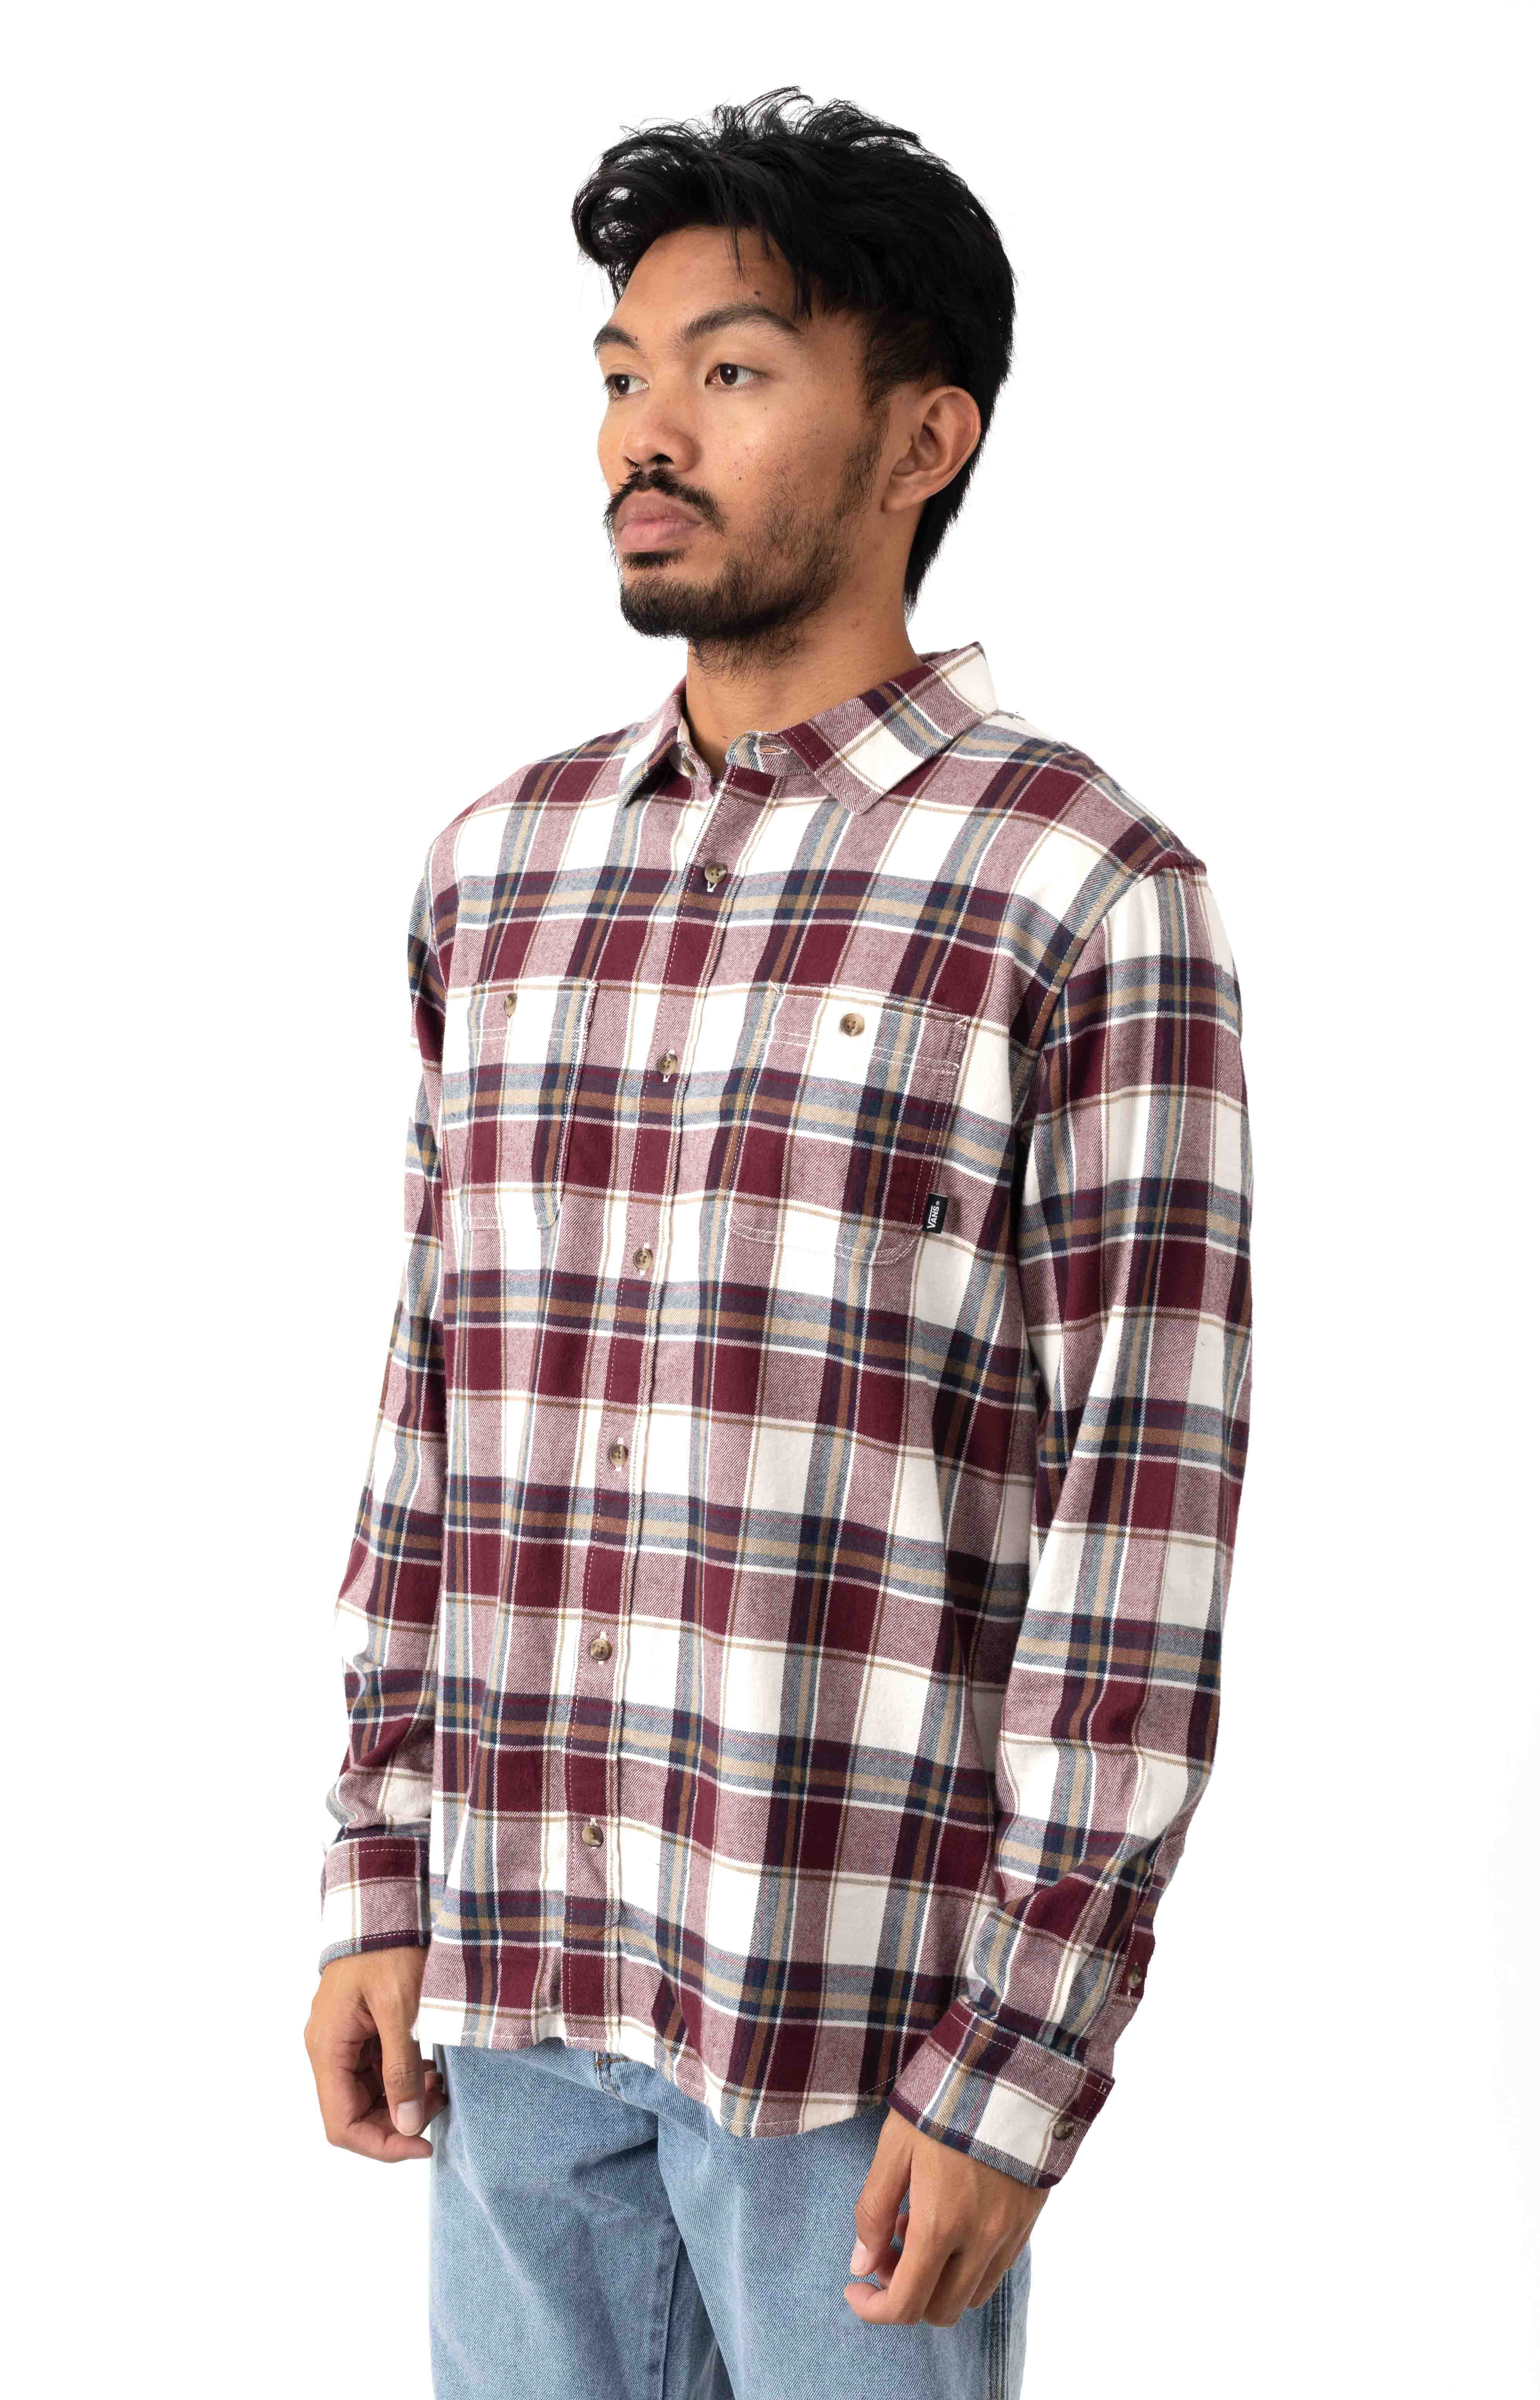 Banfield III Button-Up Shirt - Antique White/Port Royale 2